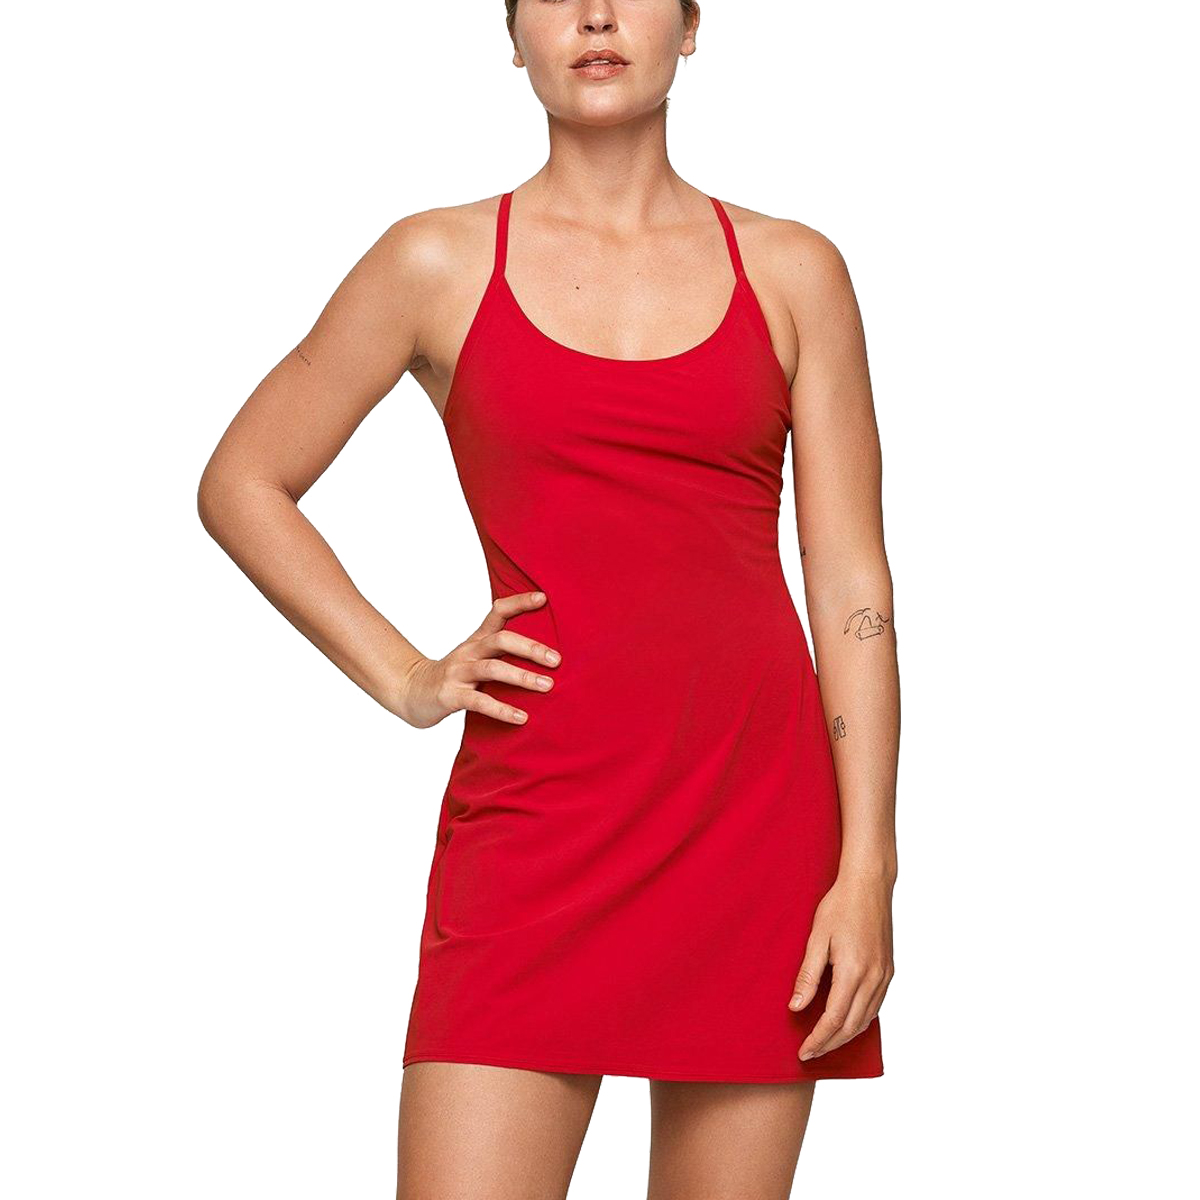 Outdoor Voices The Exercise Dress in Scarlet